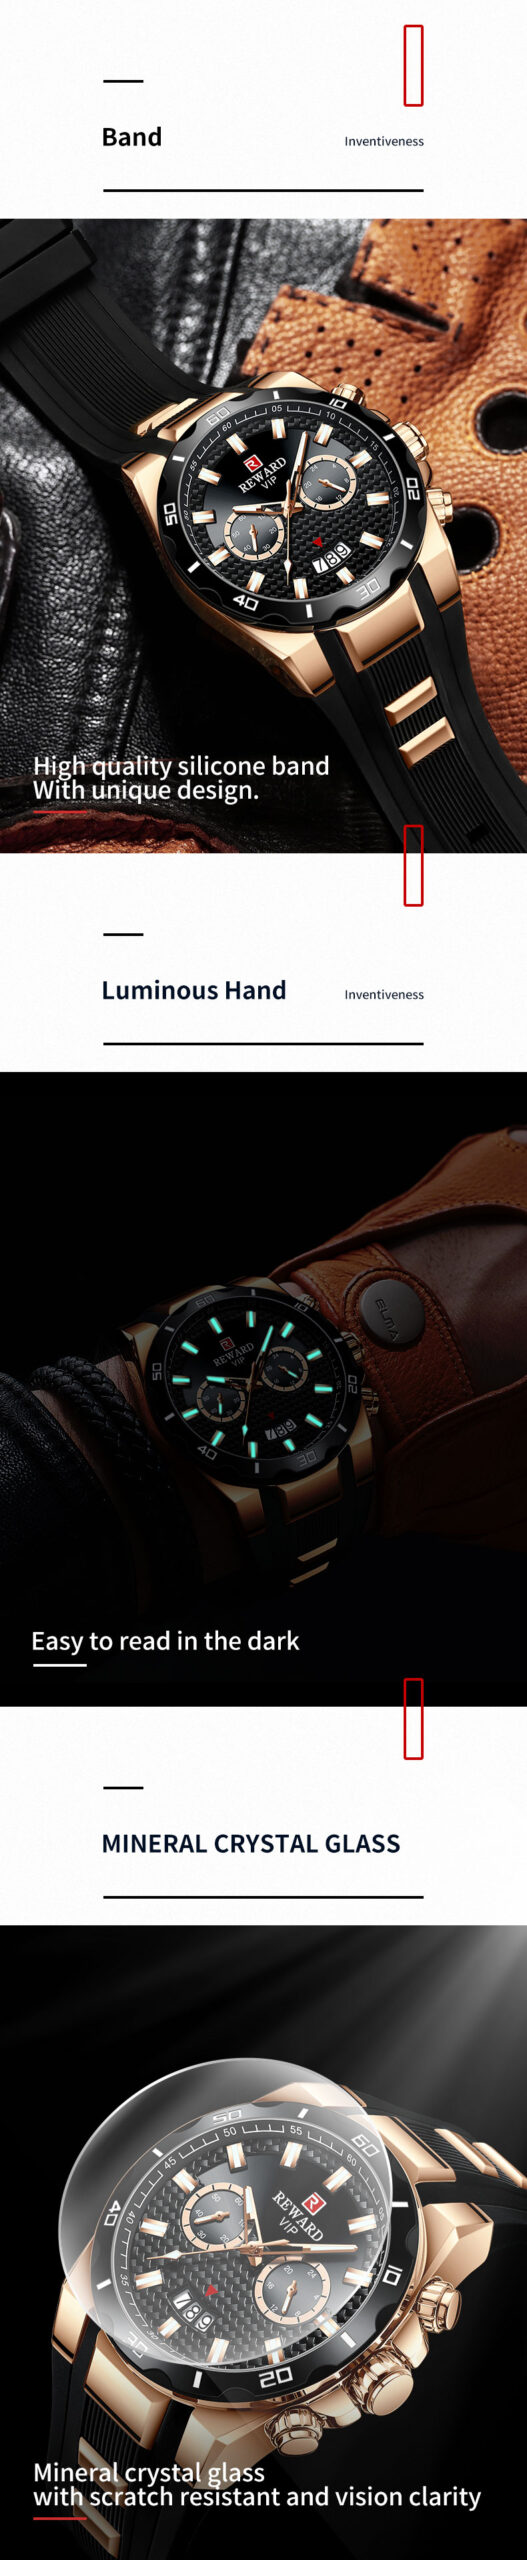 Men's Military Style Watches 7